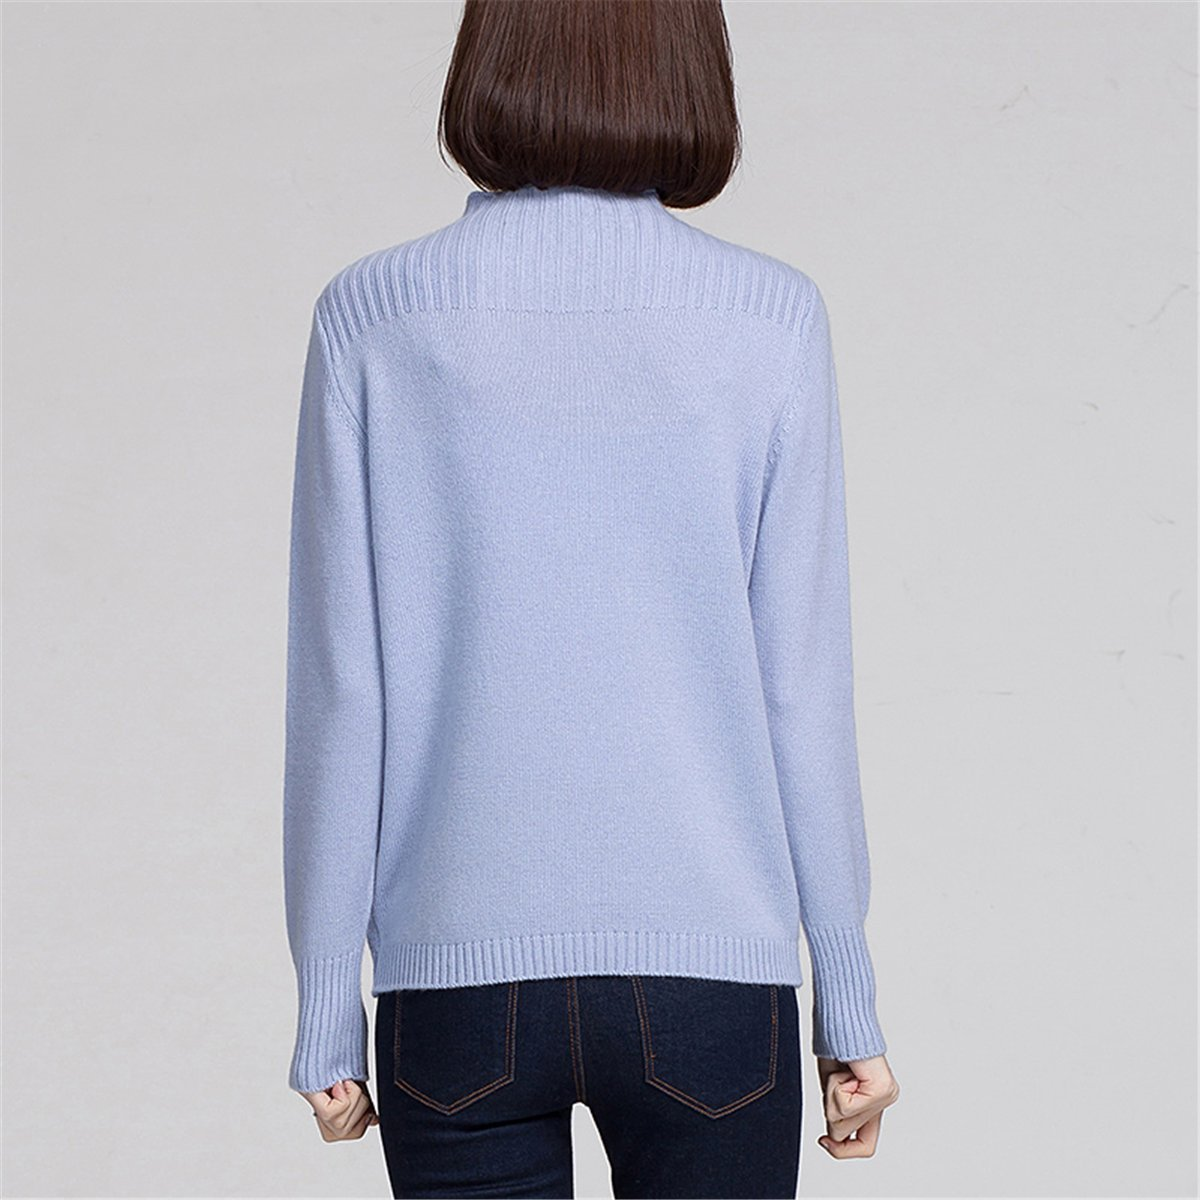 ALAPUSA Womens Casual Weave Pattern High Neck Cashmere Sweater